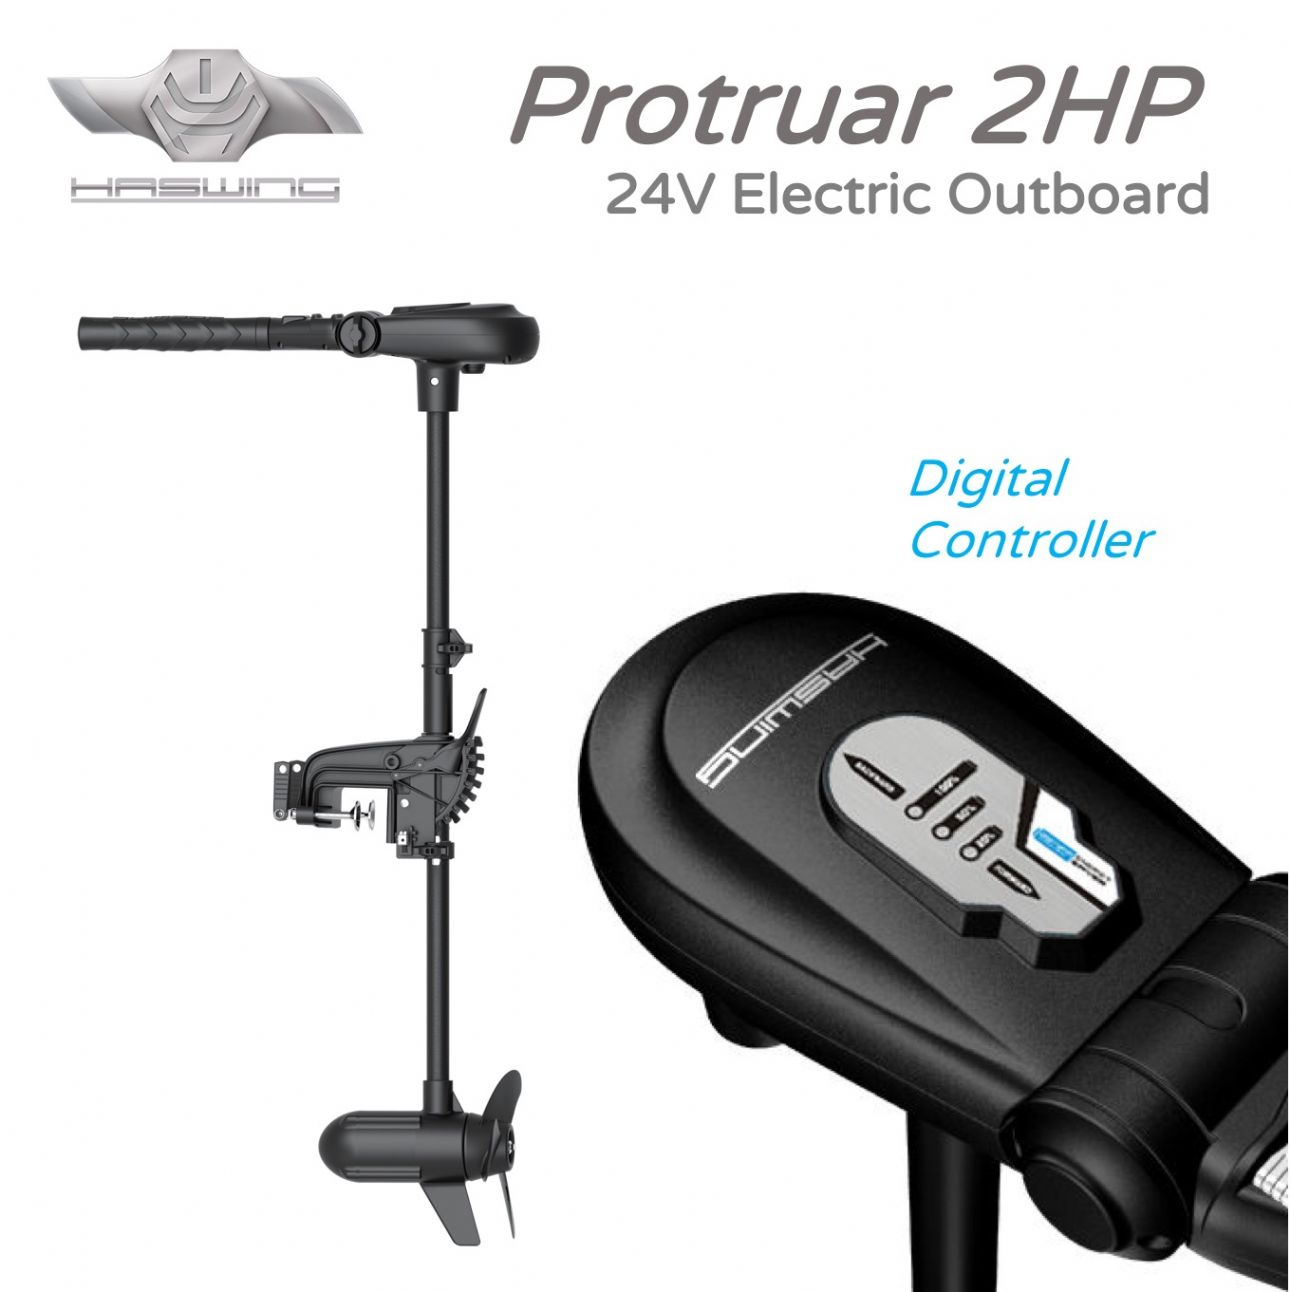 HASWING Protruar 2HP Electric Outboard 24V -